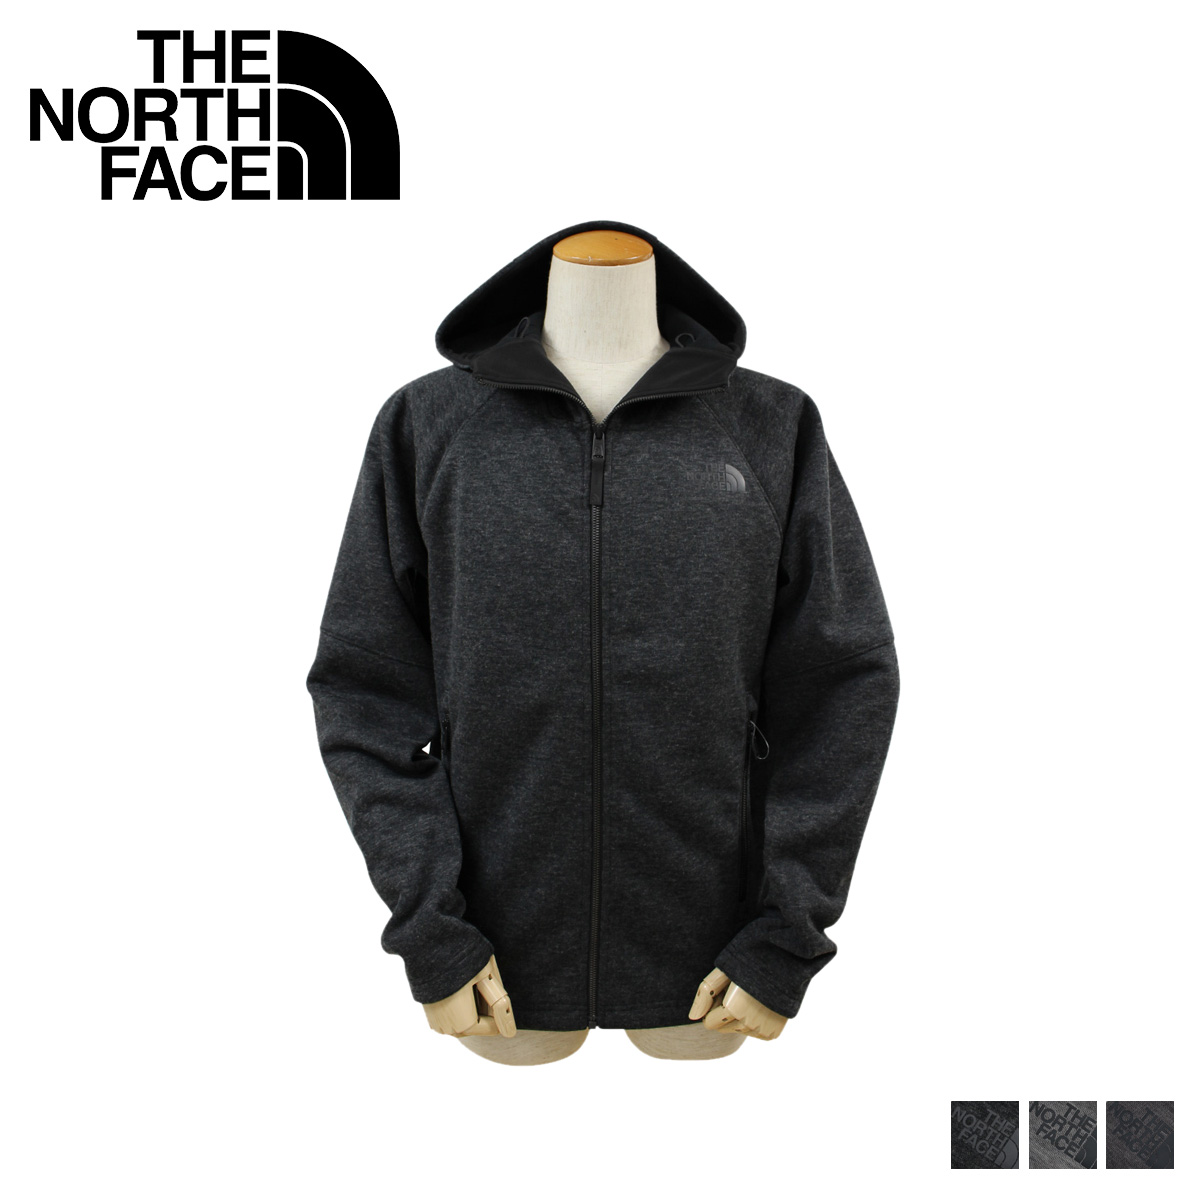 THE NORTH FACE ノースフェイス ジャケット パーカー フリースパーカー MEN'S FAR NORTHERN HOODIE NF0A2TBD メンズ 【CLEARANCE】